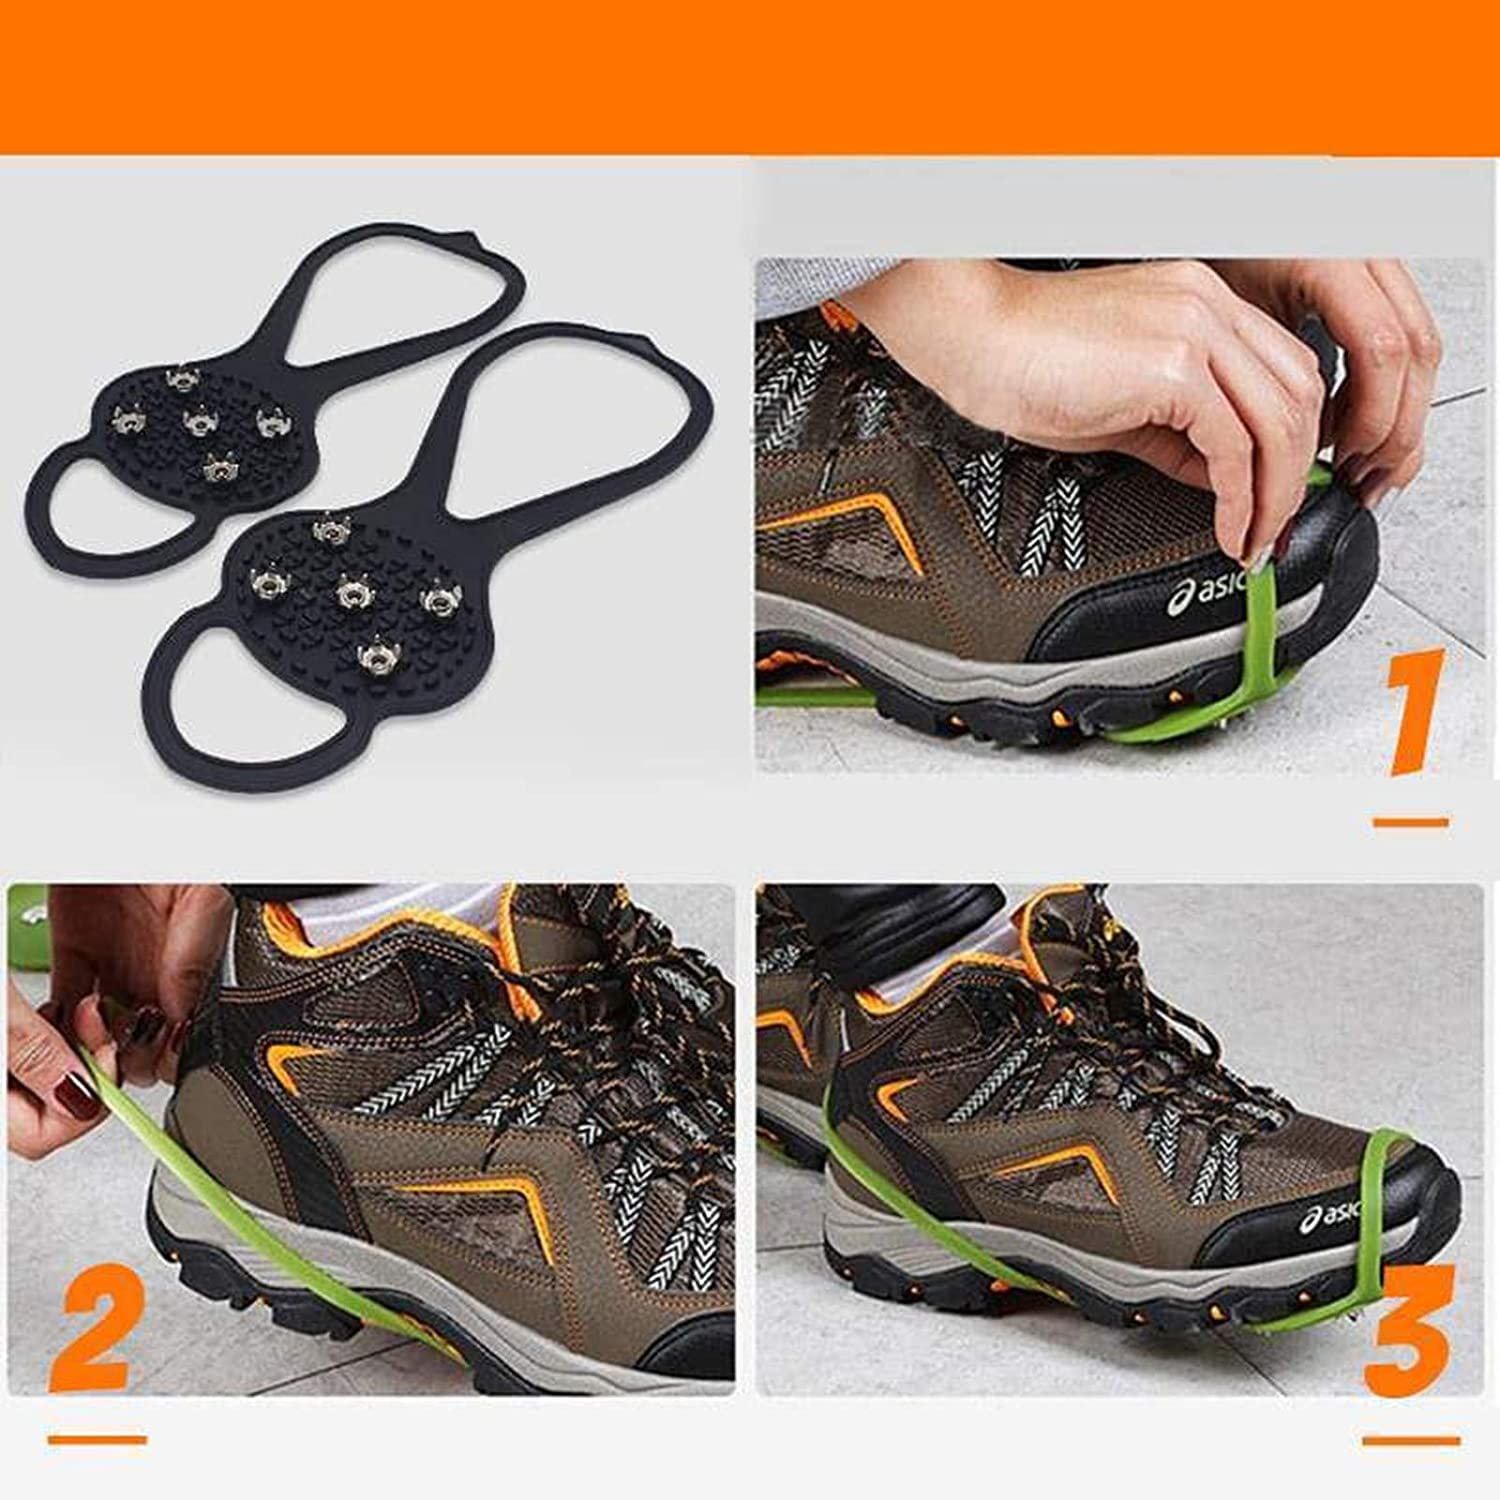 Universal Non-slip Gripper Spikes Over Shoe Durable Cleats With Good  Elasticity